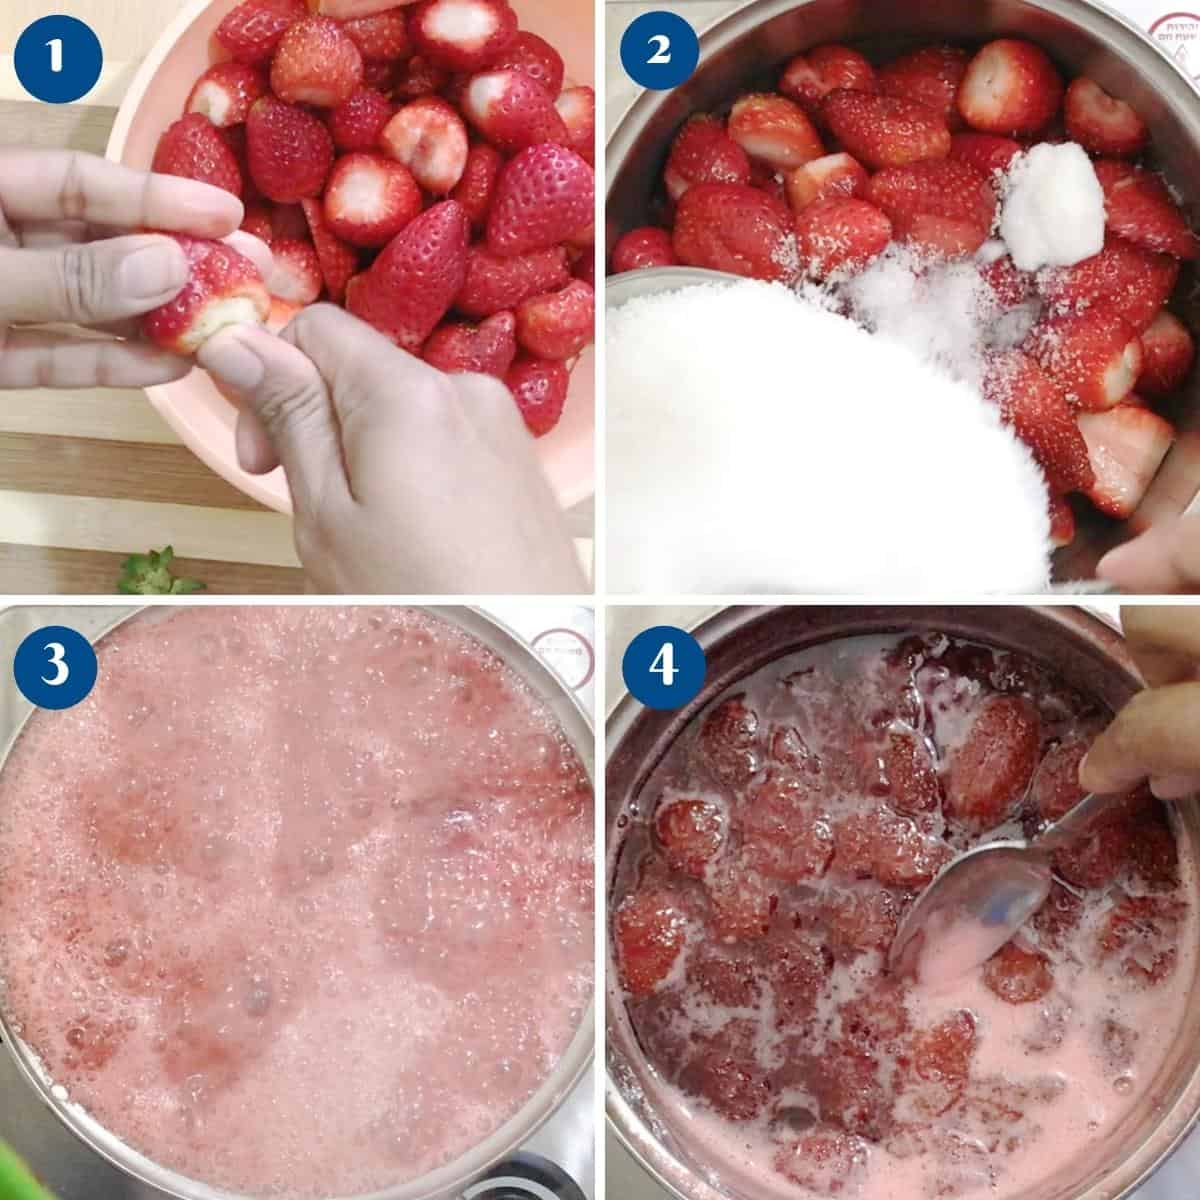 Progress pictures for strawberry jam.